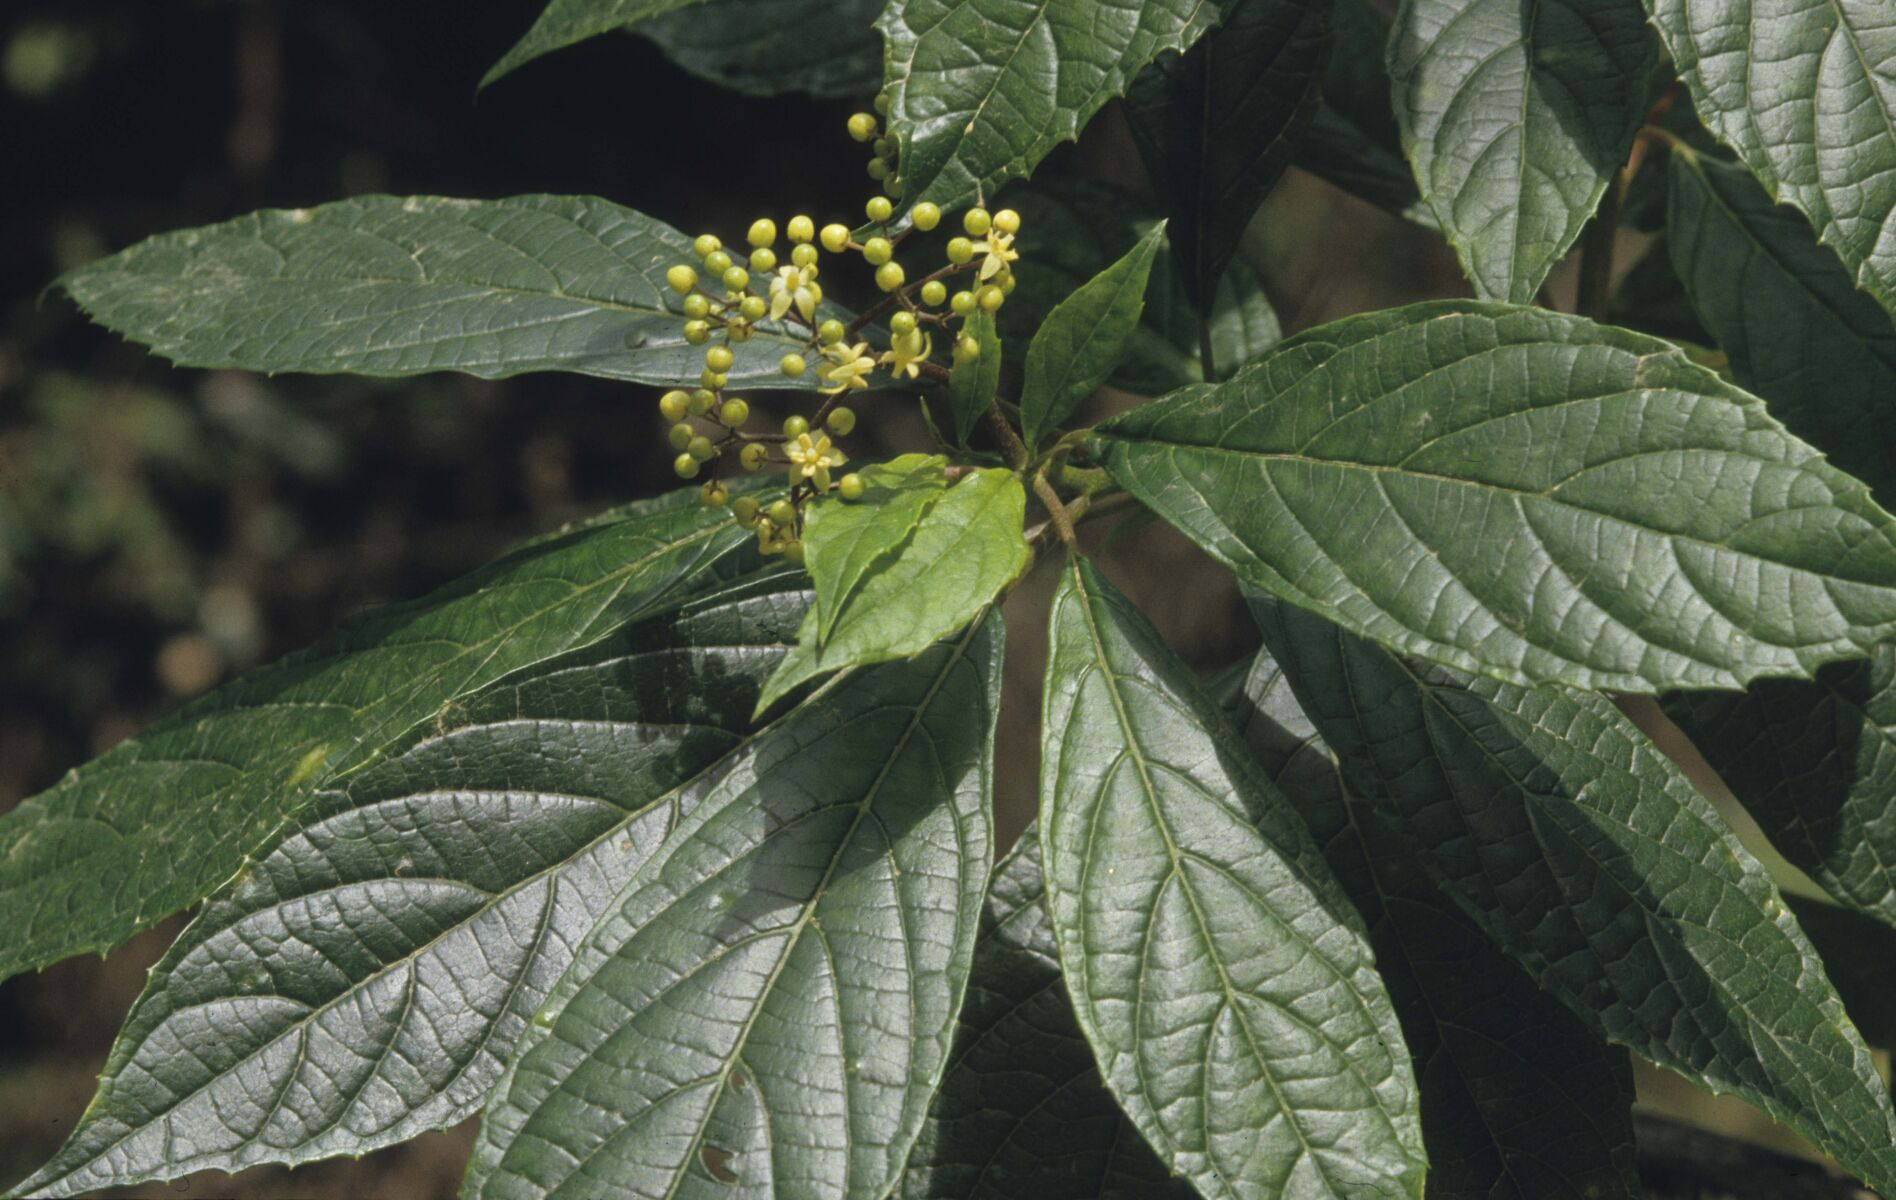 Showing leaves and flower buds